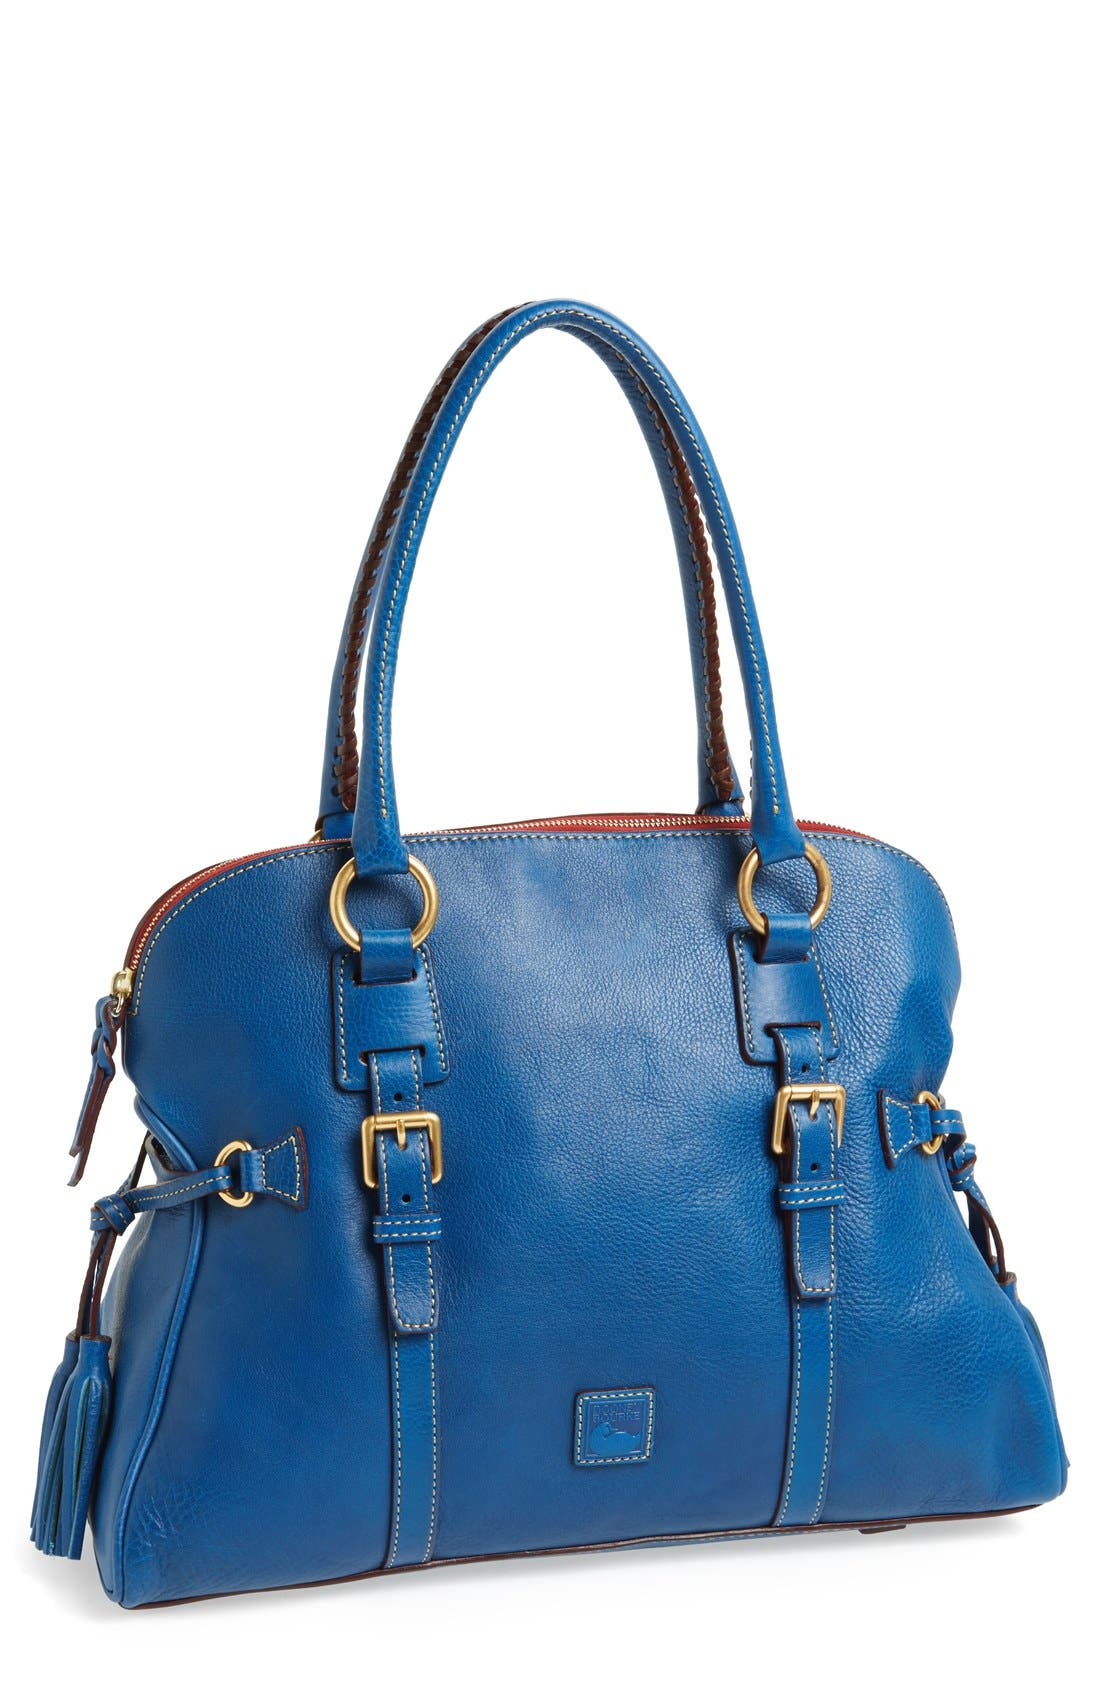 Main Image - Dooney & Bourke 'Florentine Collection' Domed Leather Buckle Satchel